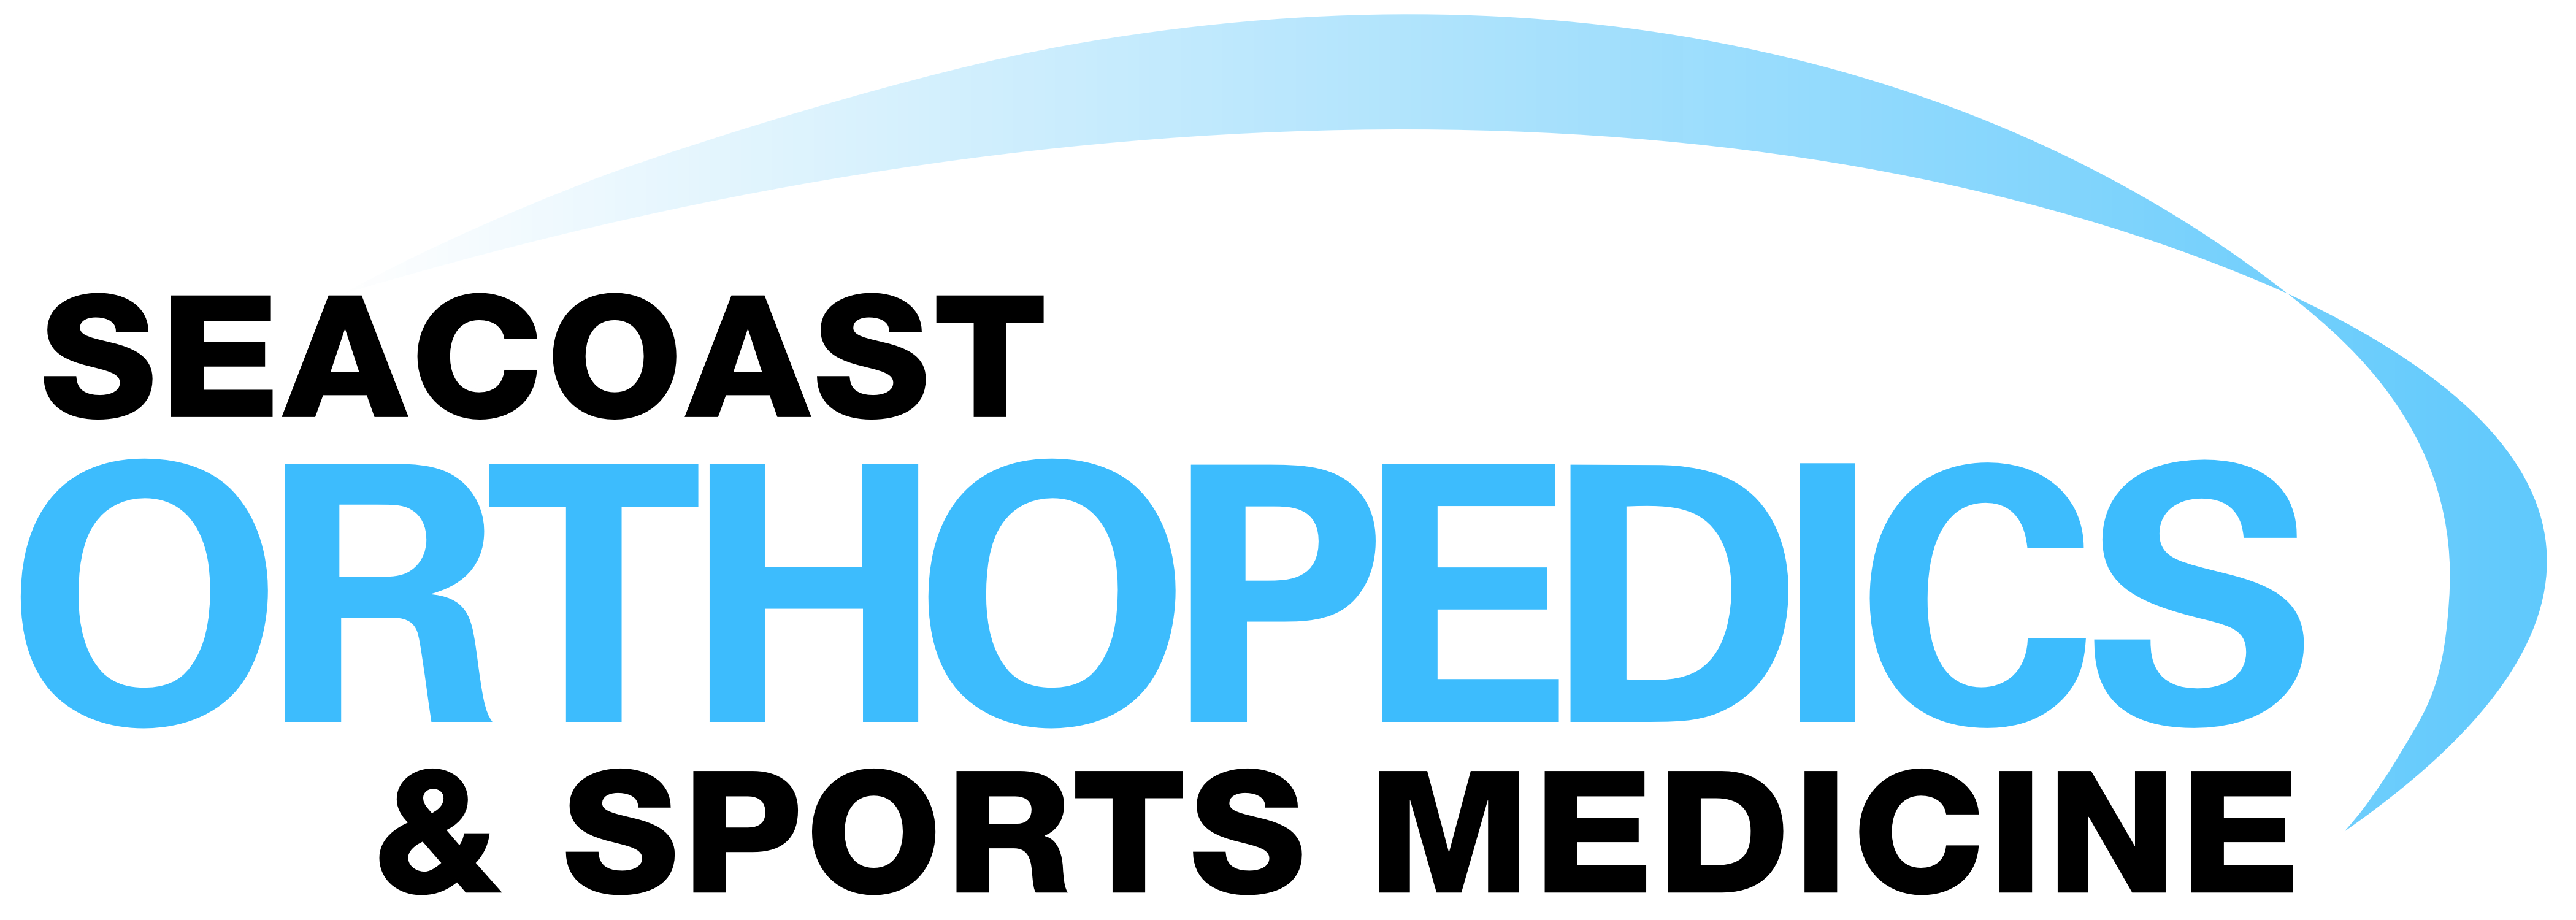 Seacoast Orthopedics & Sports Medicine Logo